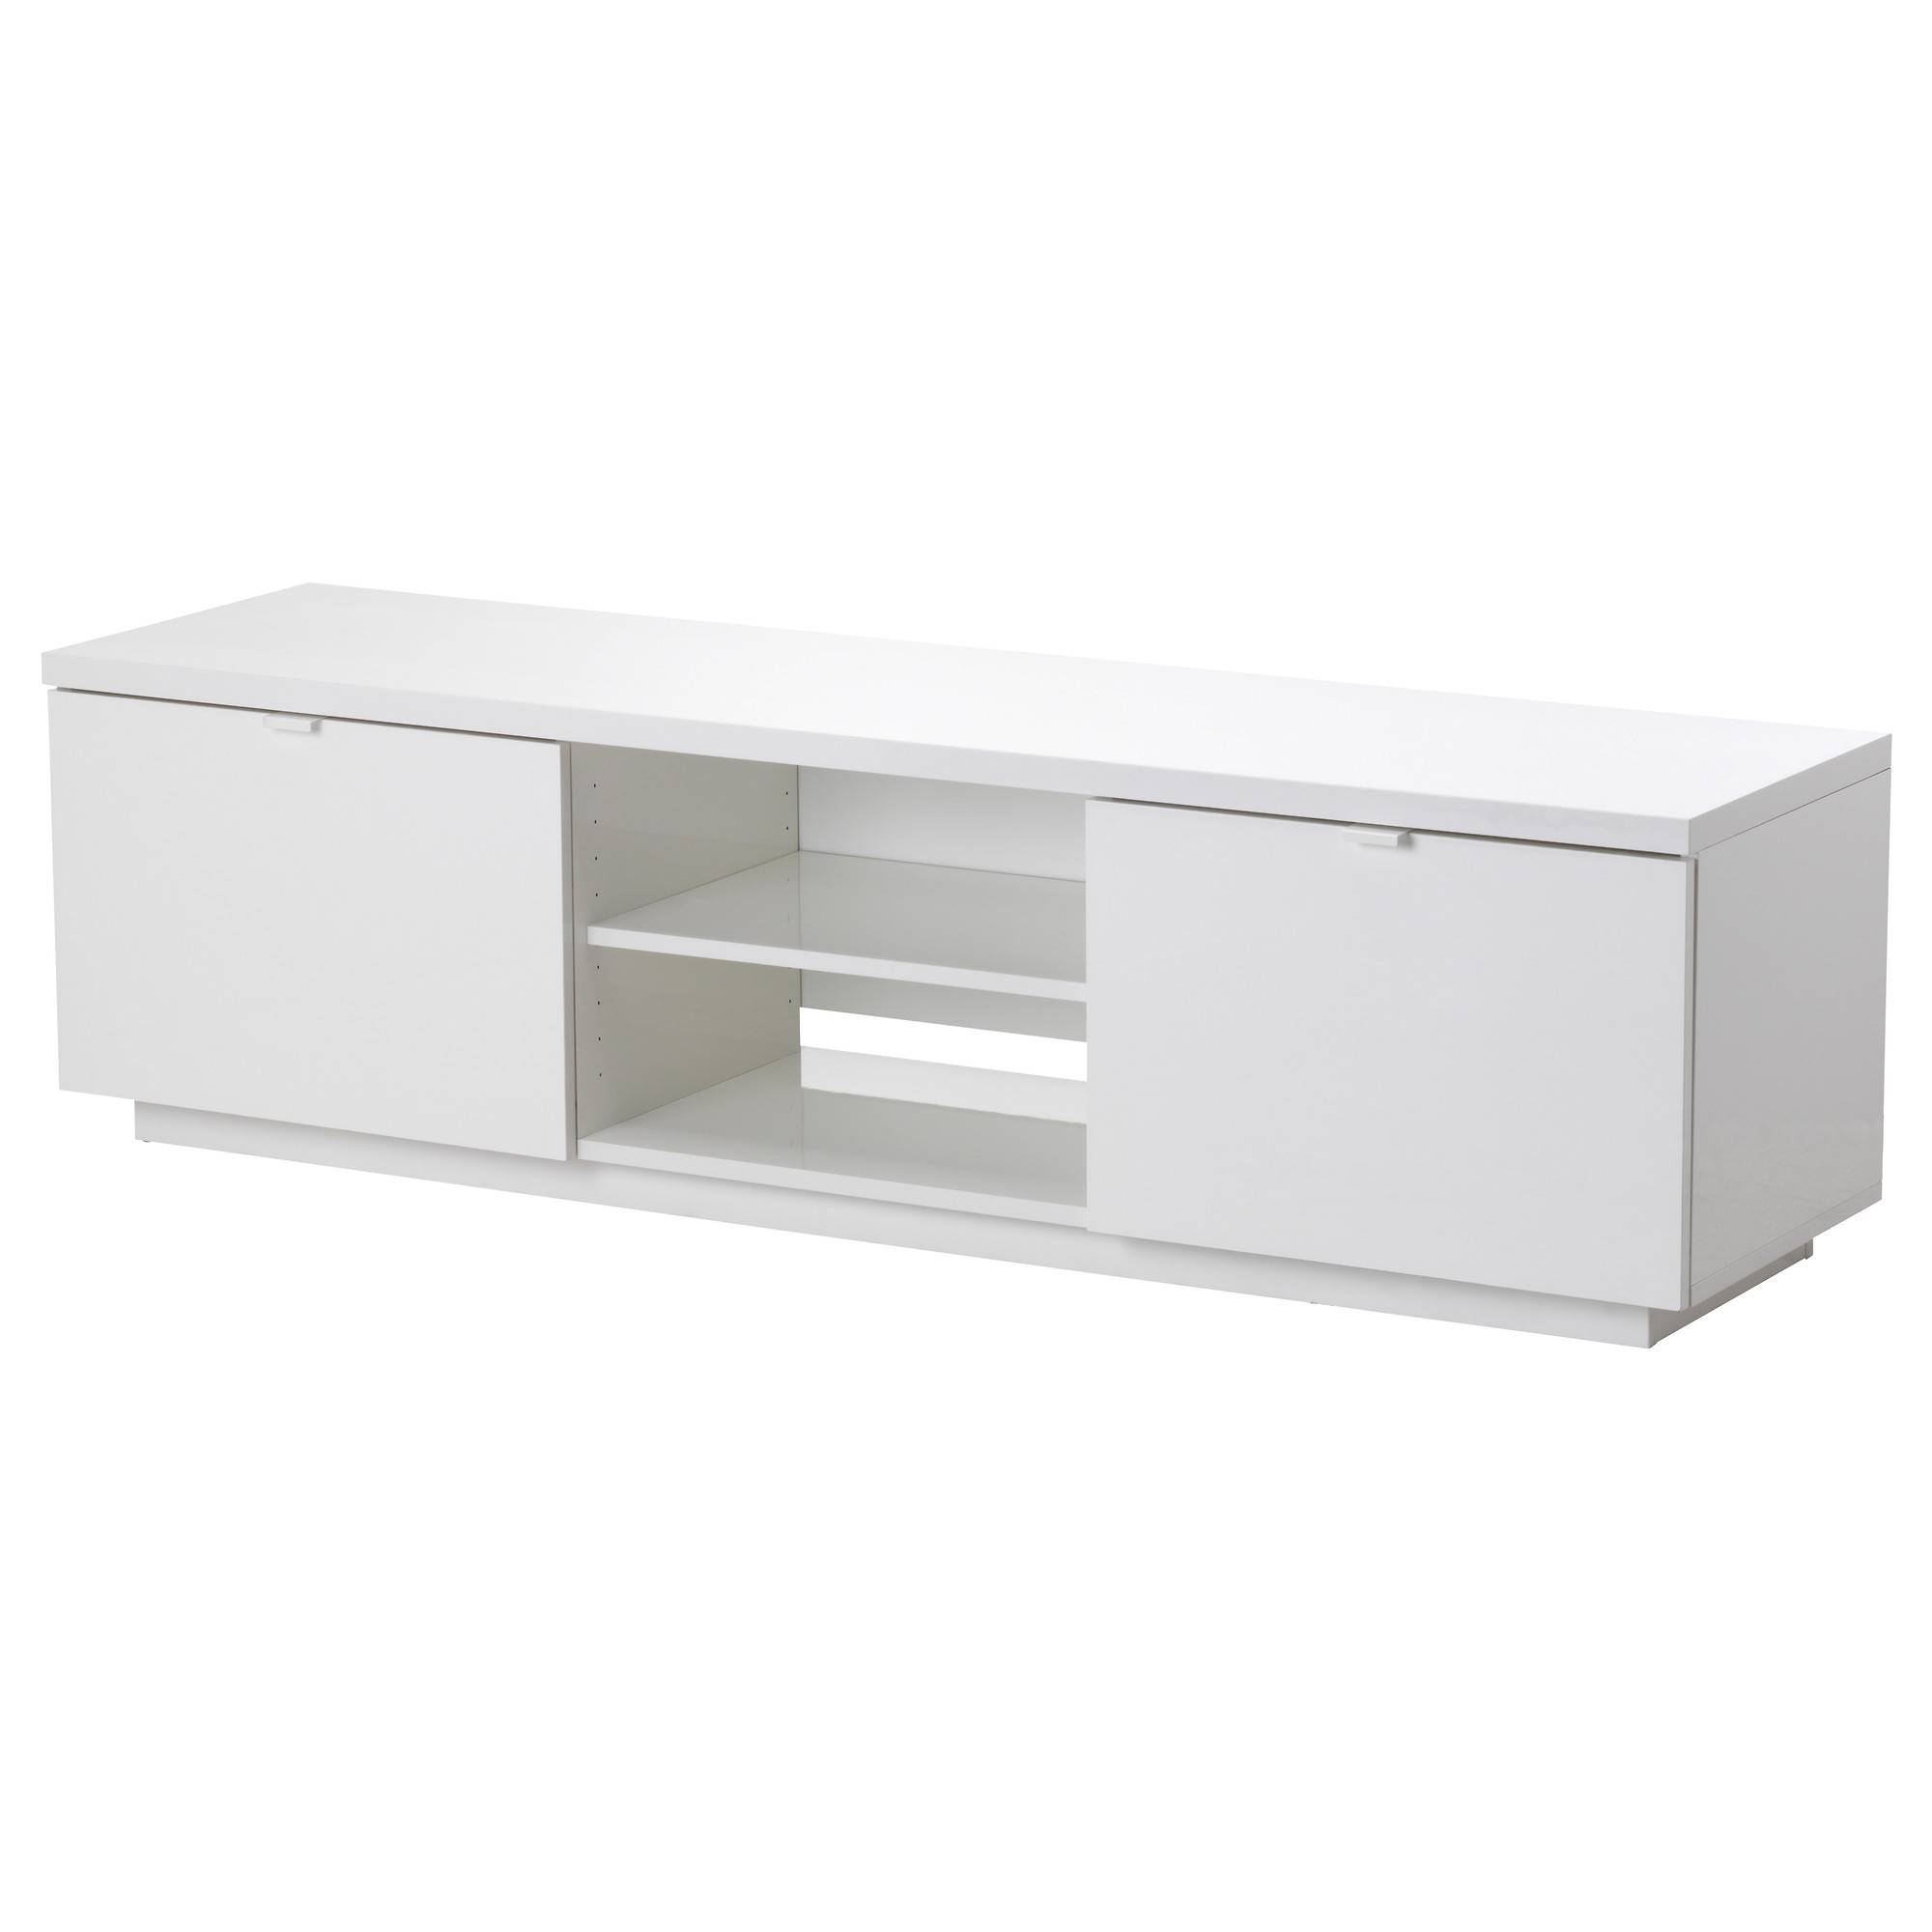 Byås Tv Unit - Ikea within White High Gloss Corner Tv Unit (Image 3 of 15)